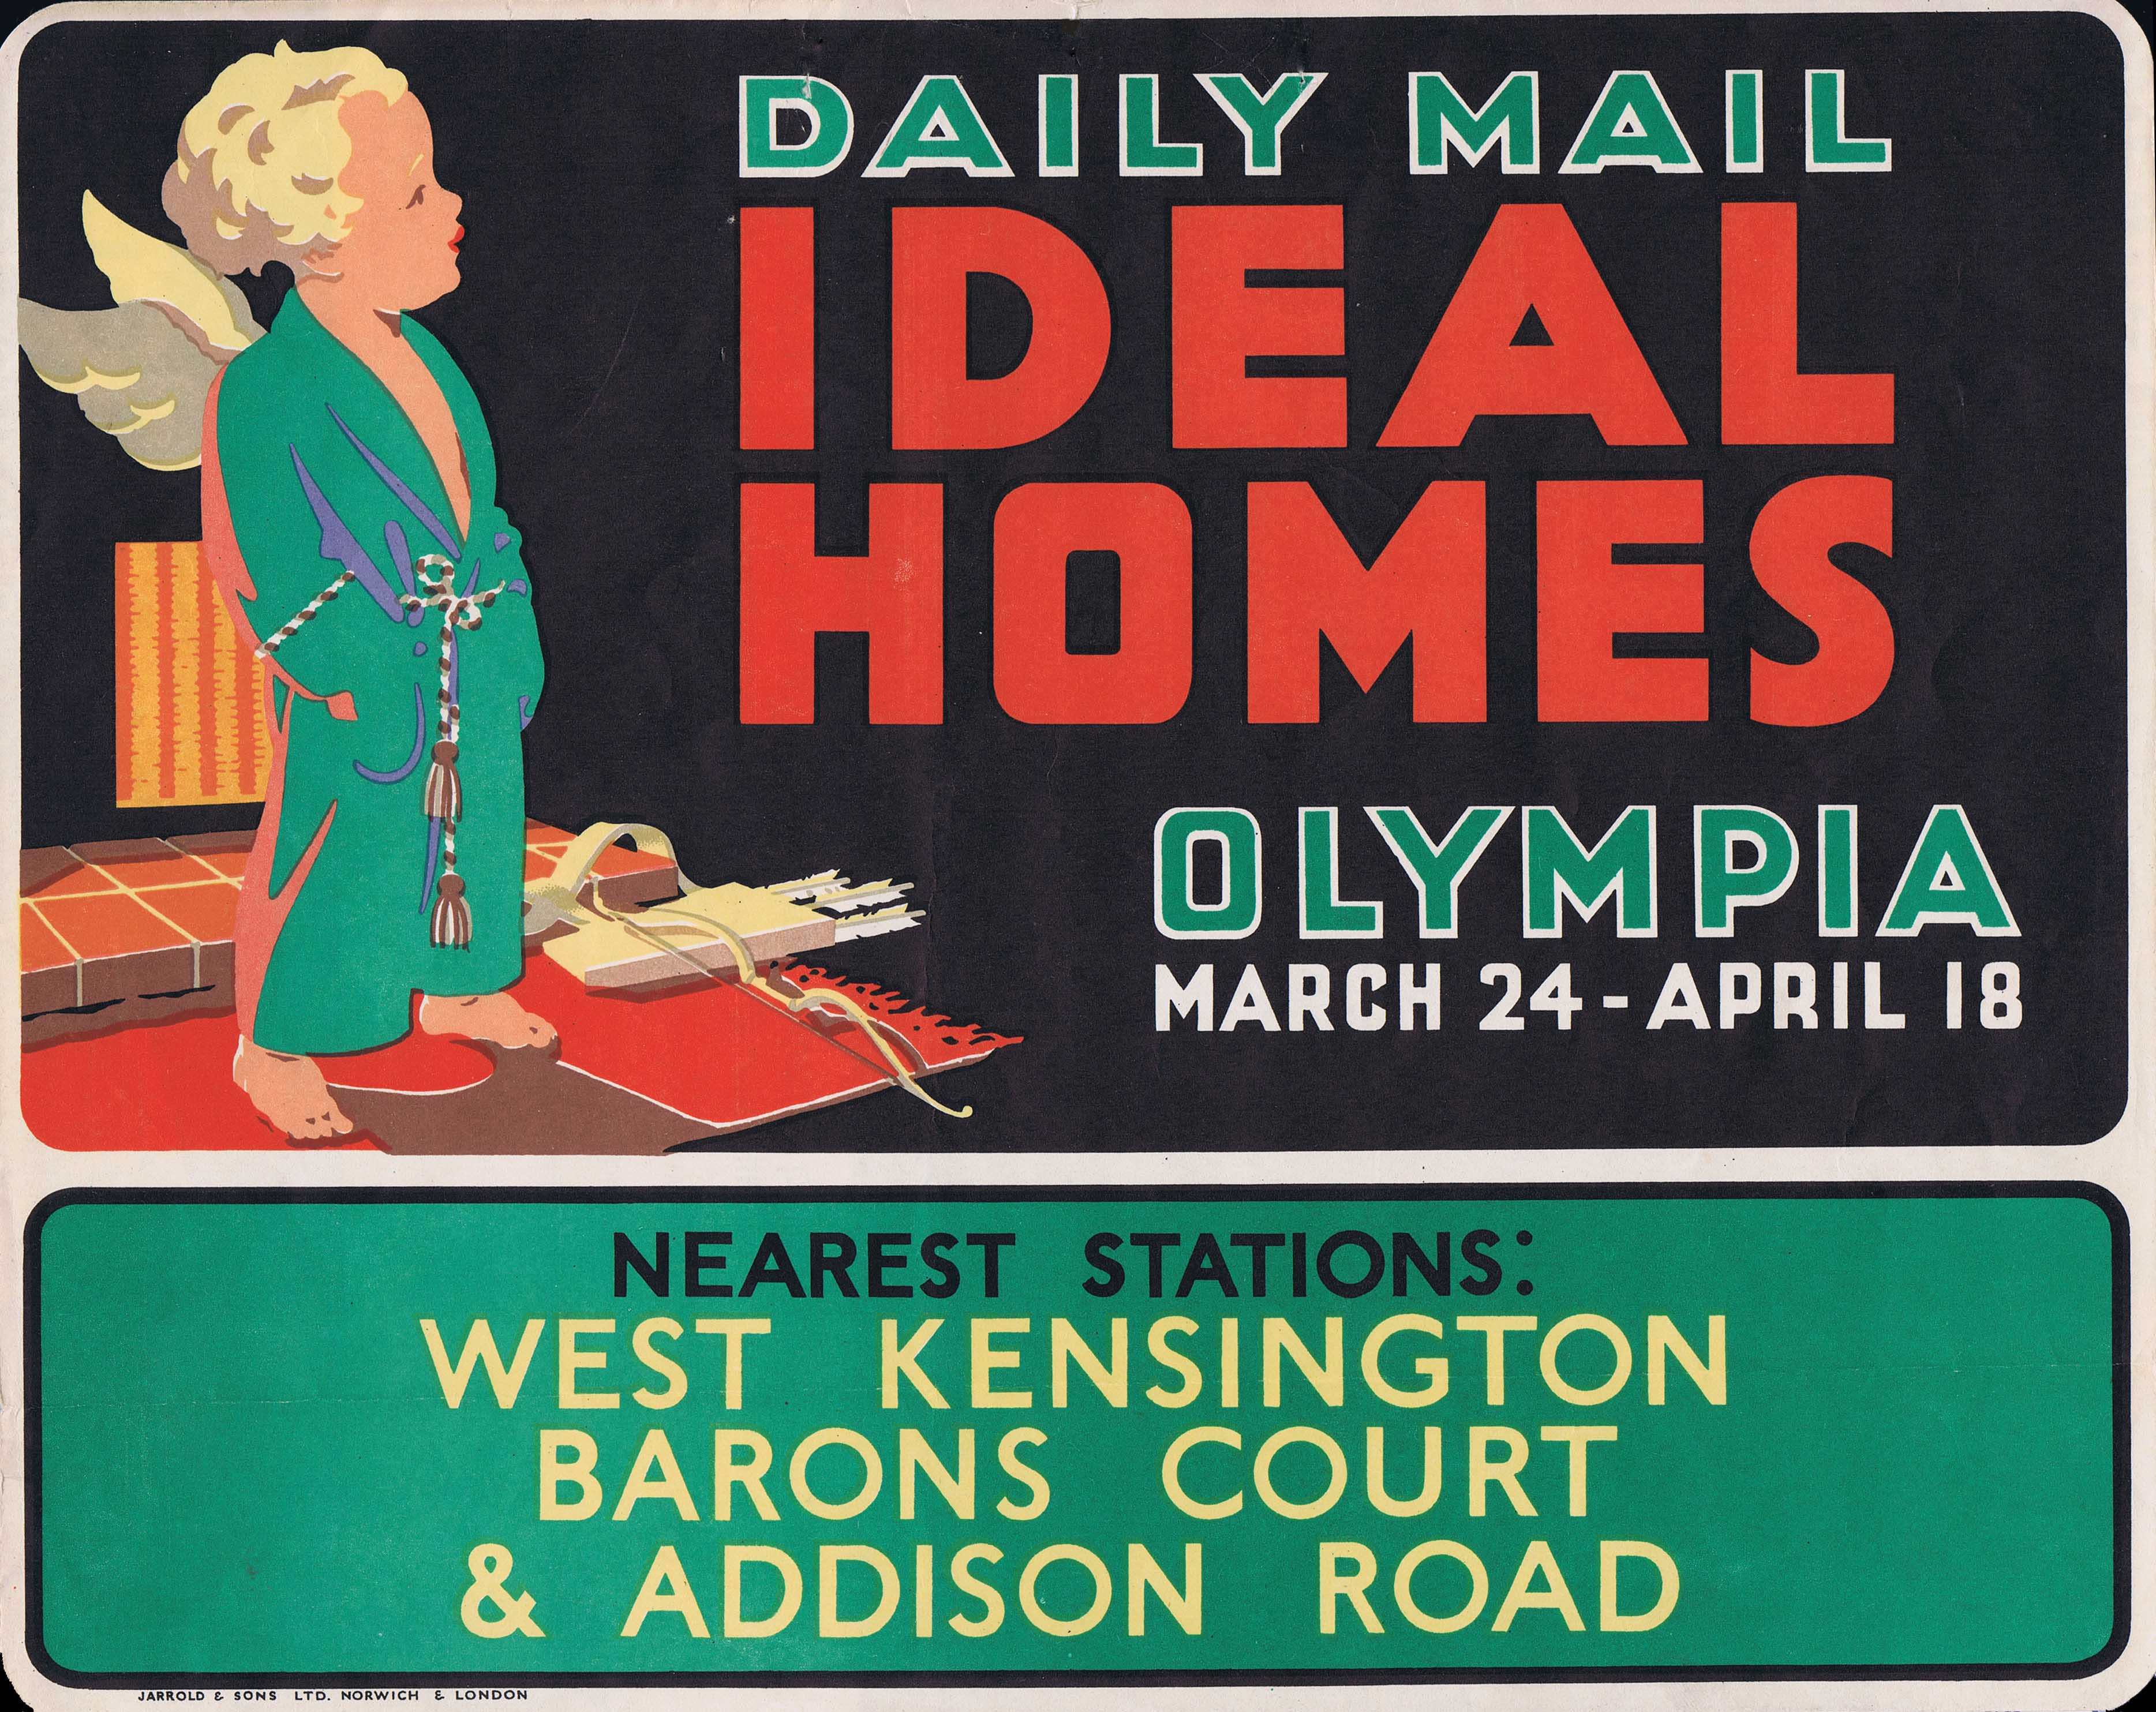 Lot 1304 - Advertising Posters Ideal Homes Olympia Daily Mail 1936